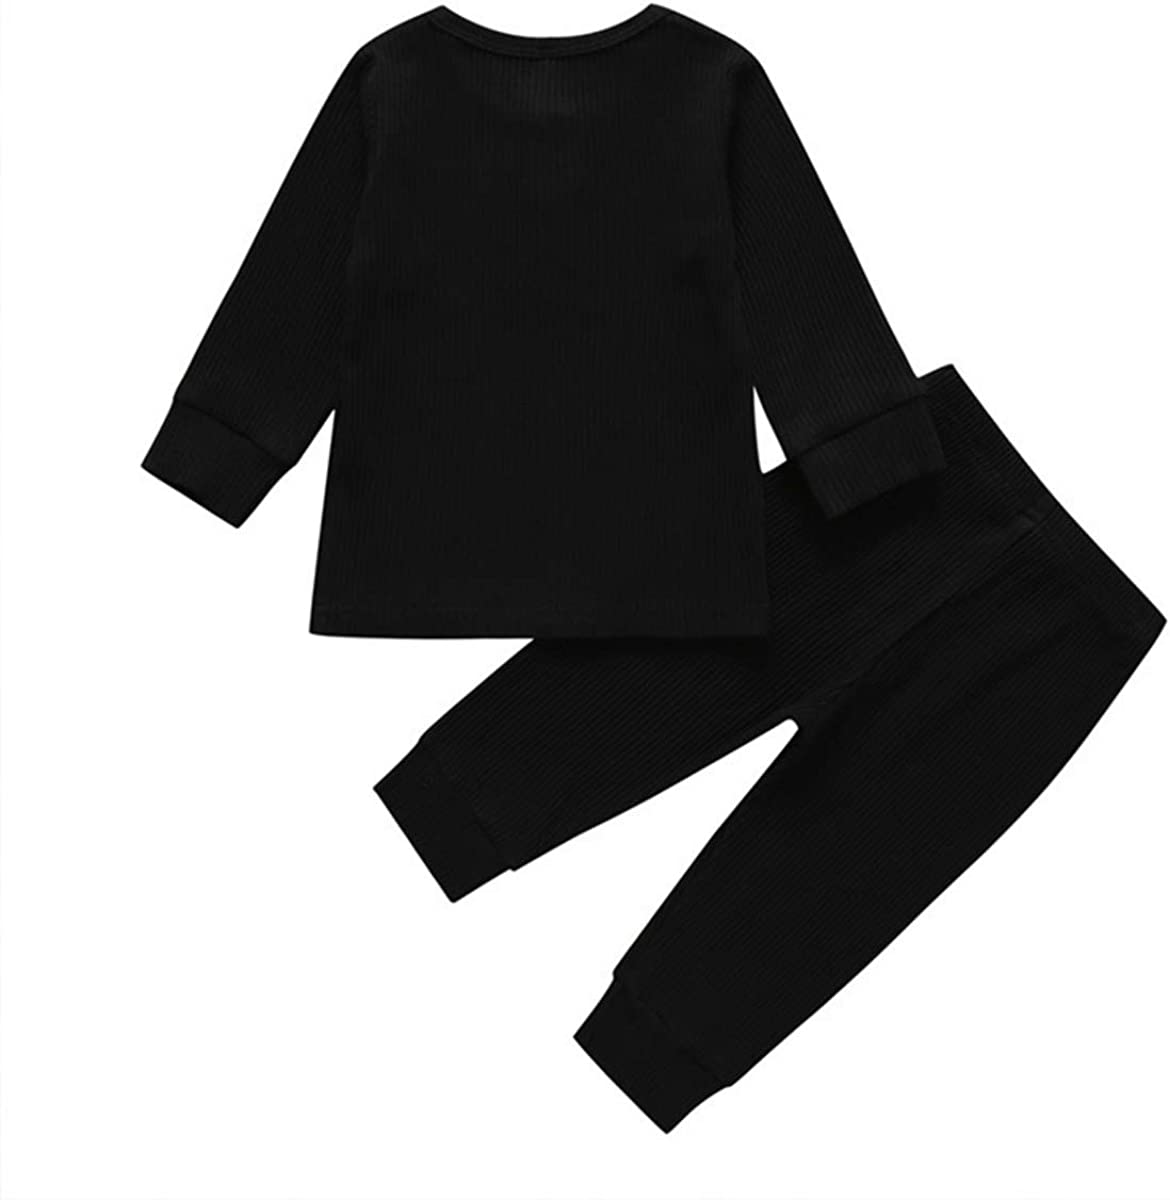 2PCS Baby Boys Girls Cotton Clothes Set Long Sleeve Tops Pants Pajama Solid Color Outfit Sleepwear